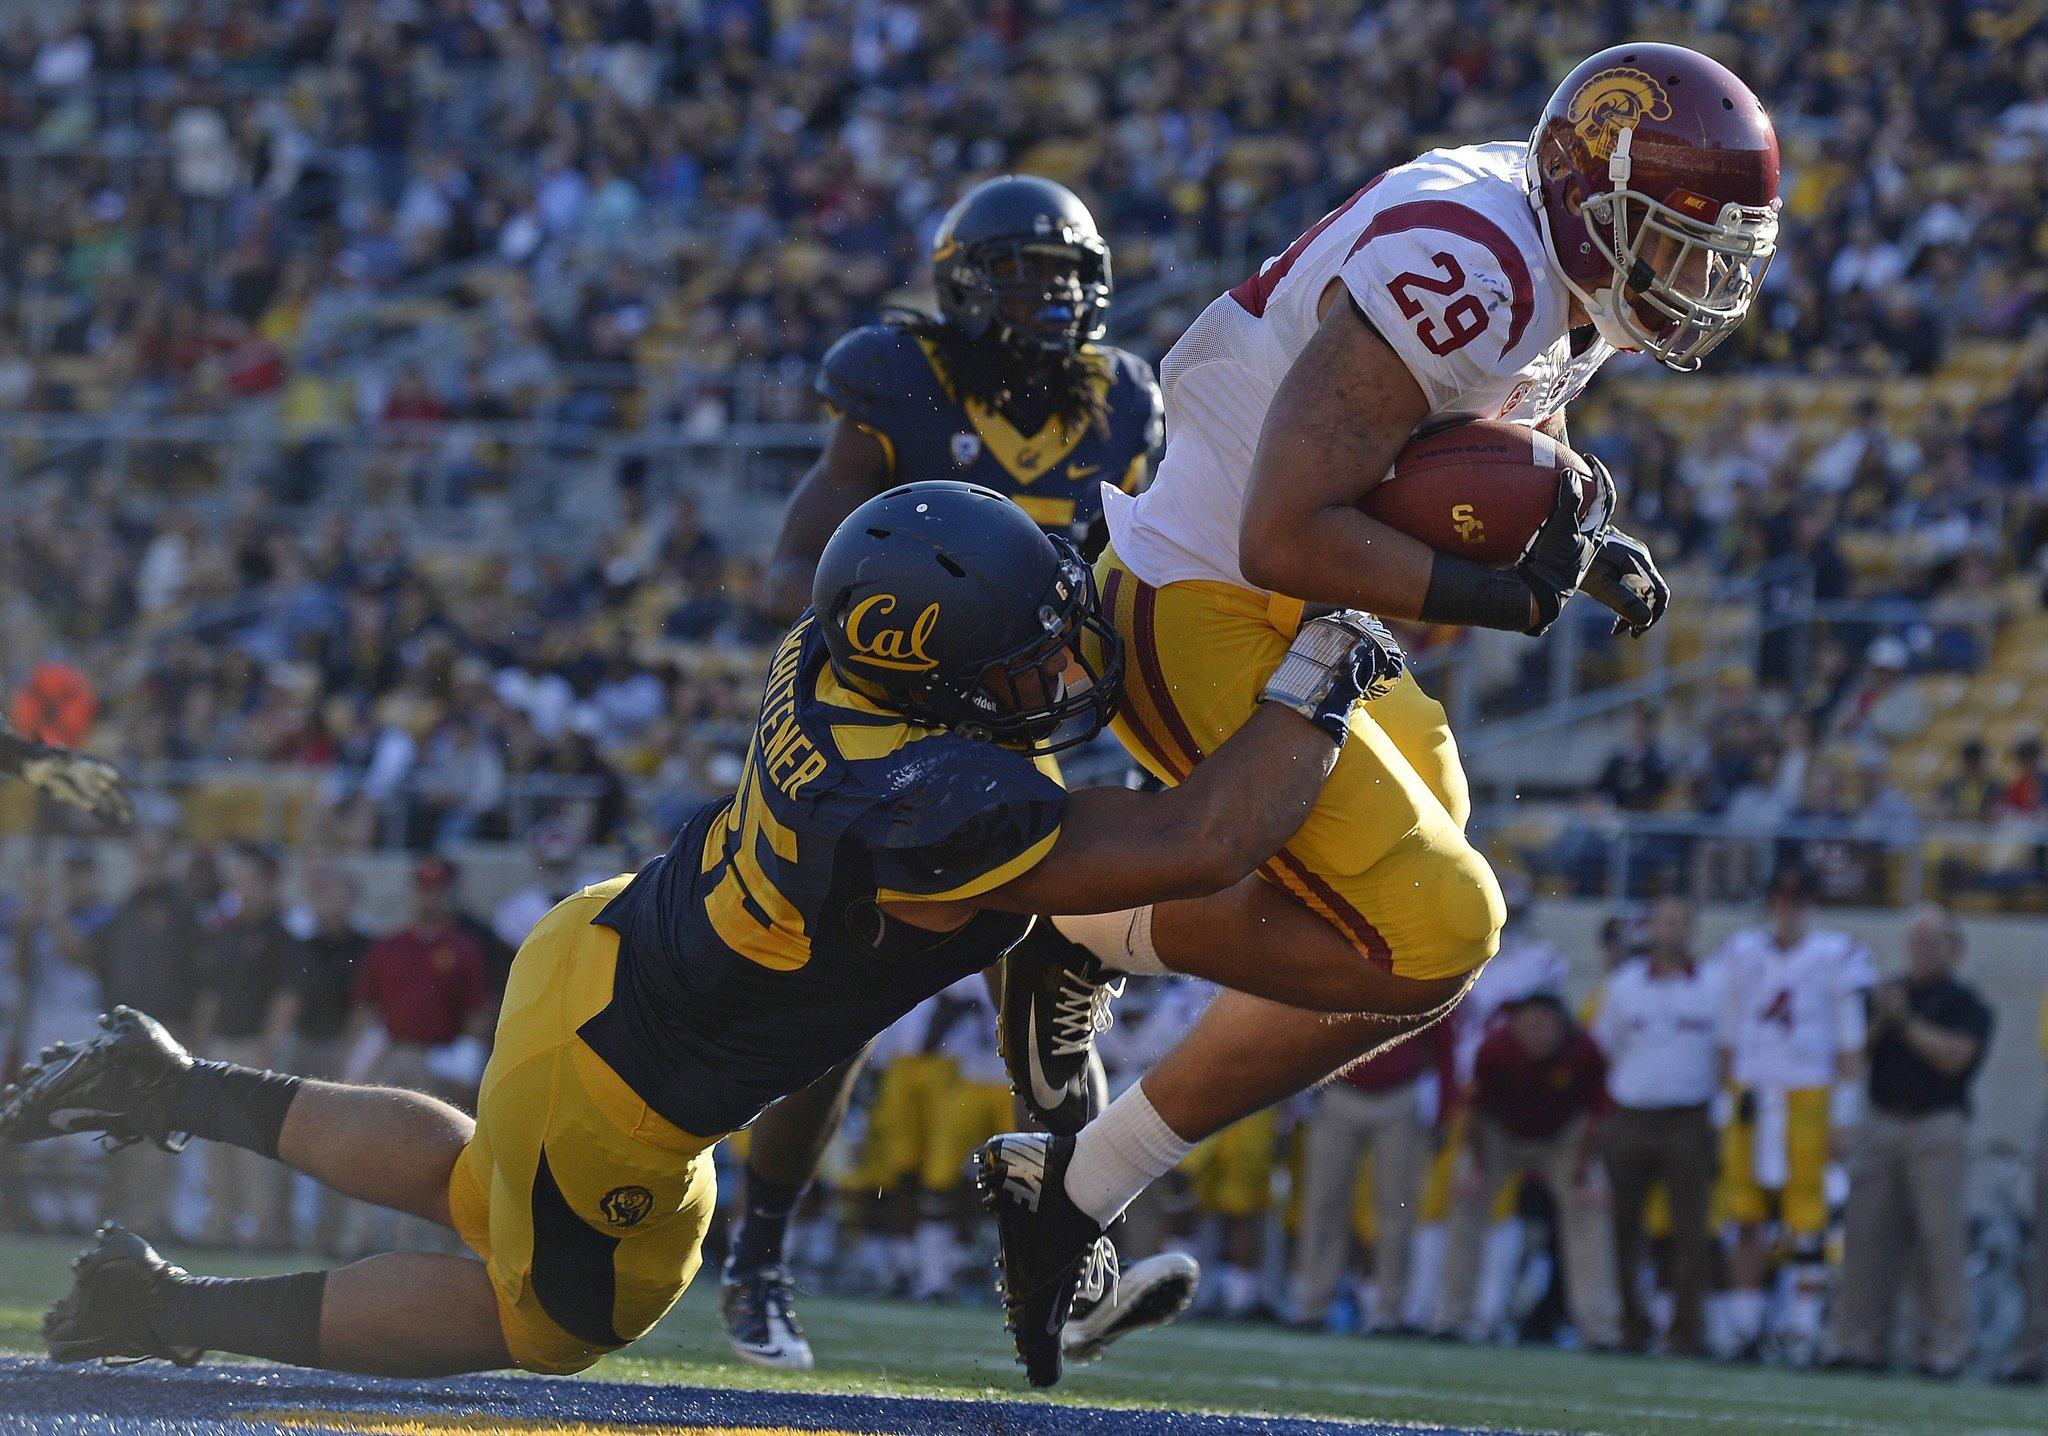 Ty Isaac of Southern California scores a 4-yard touchdown as Chad Whitener of California tackles from behind.